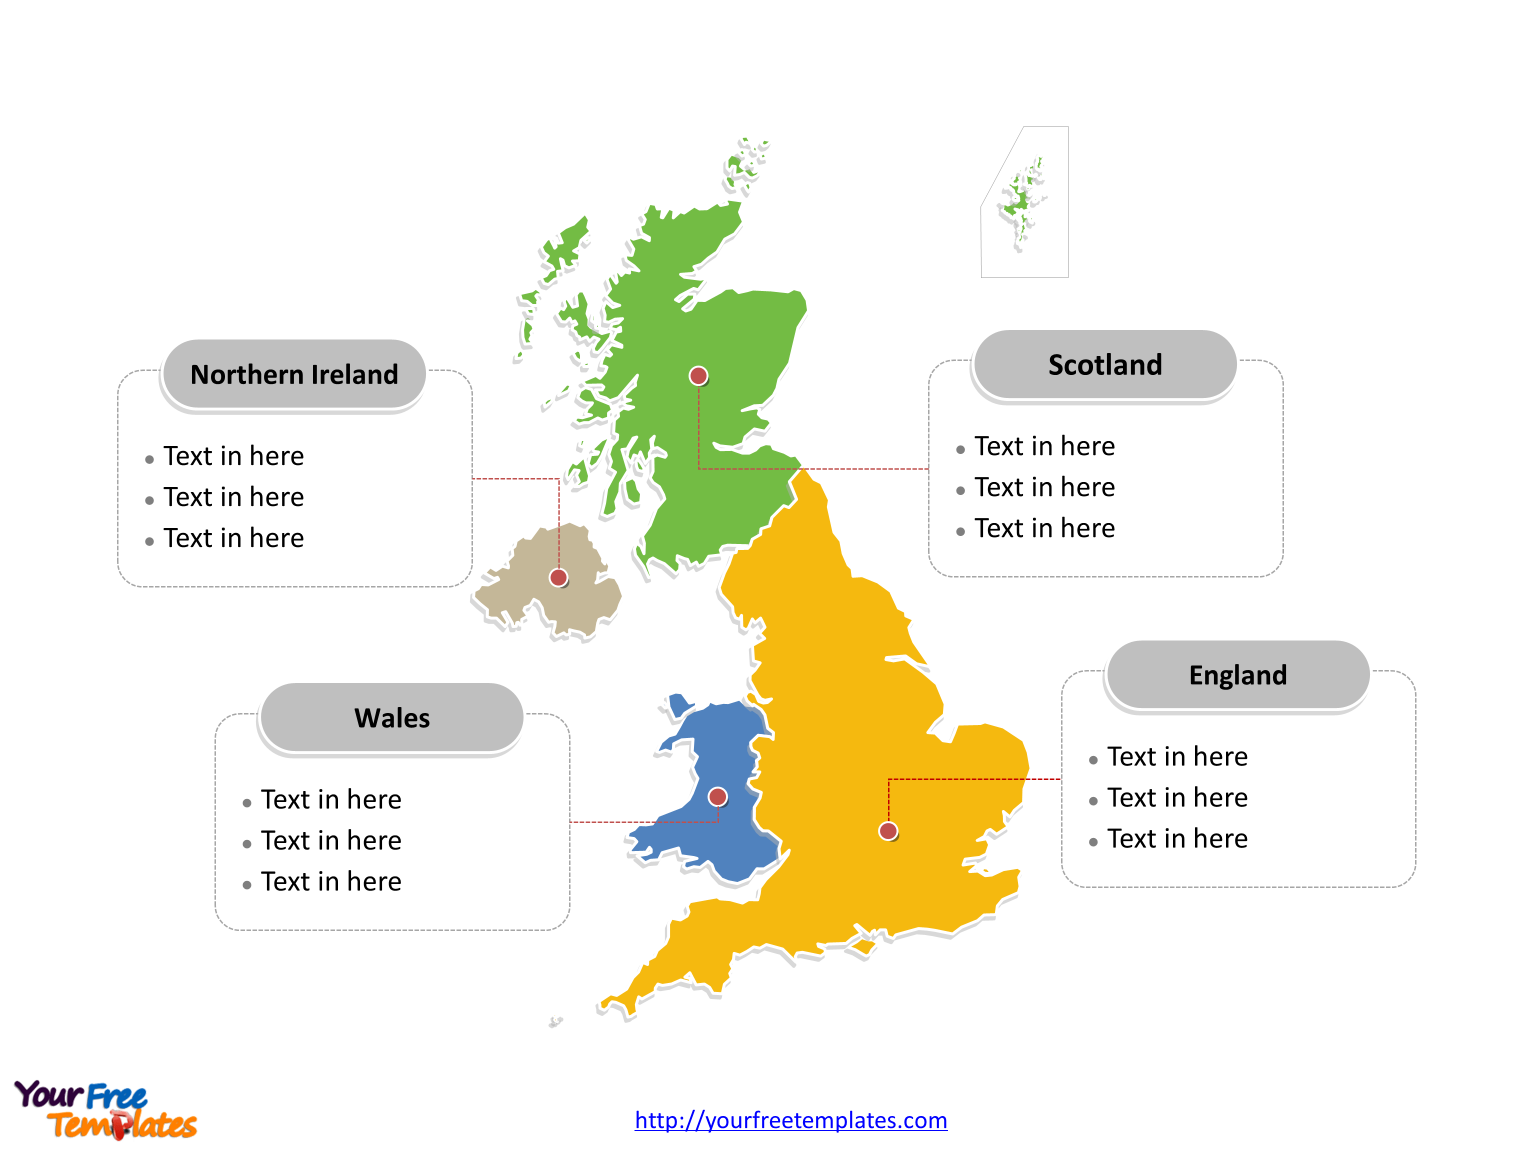 Free united kingdom map free powerpoint templates uk map with major administration districts labeled on the united kingdom map powerpoint templates toneelgroepblik Image collections